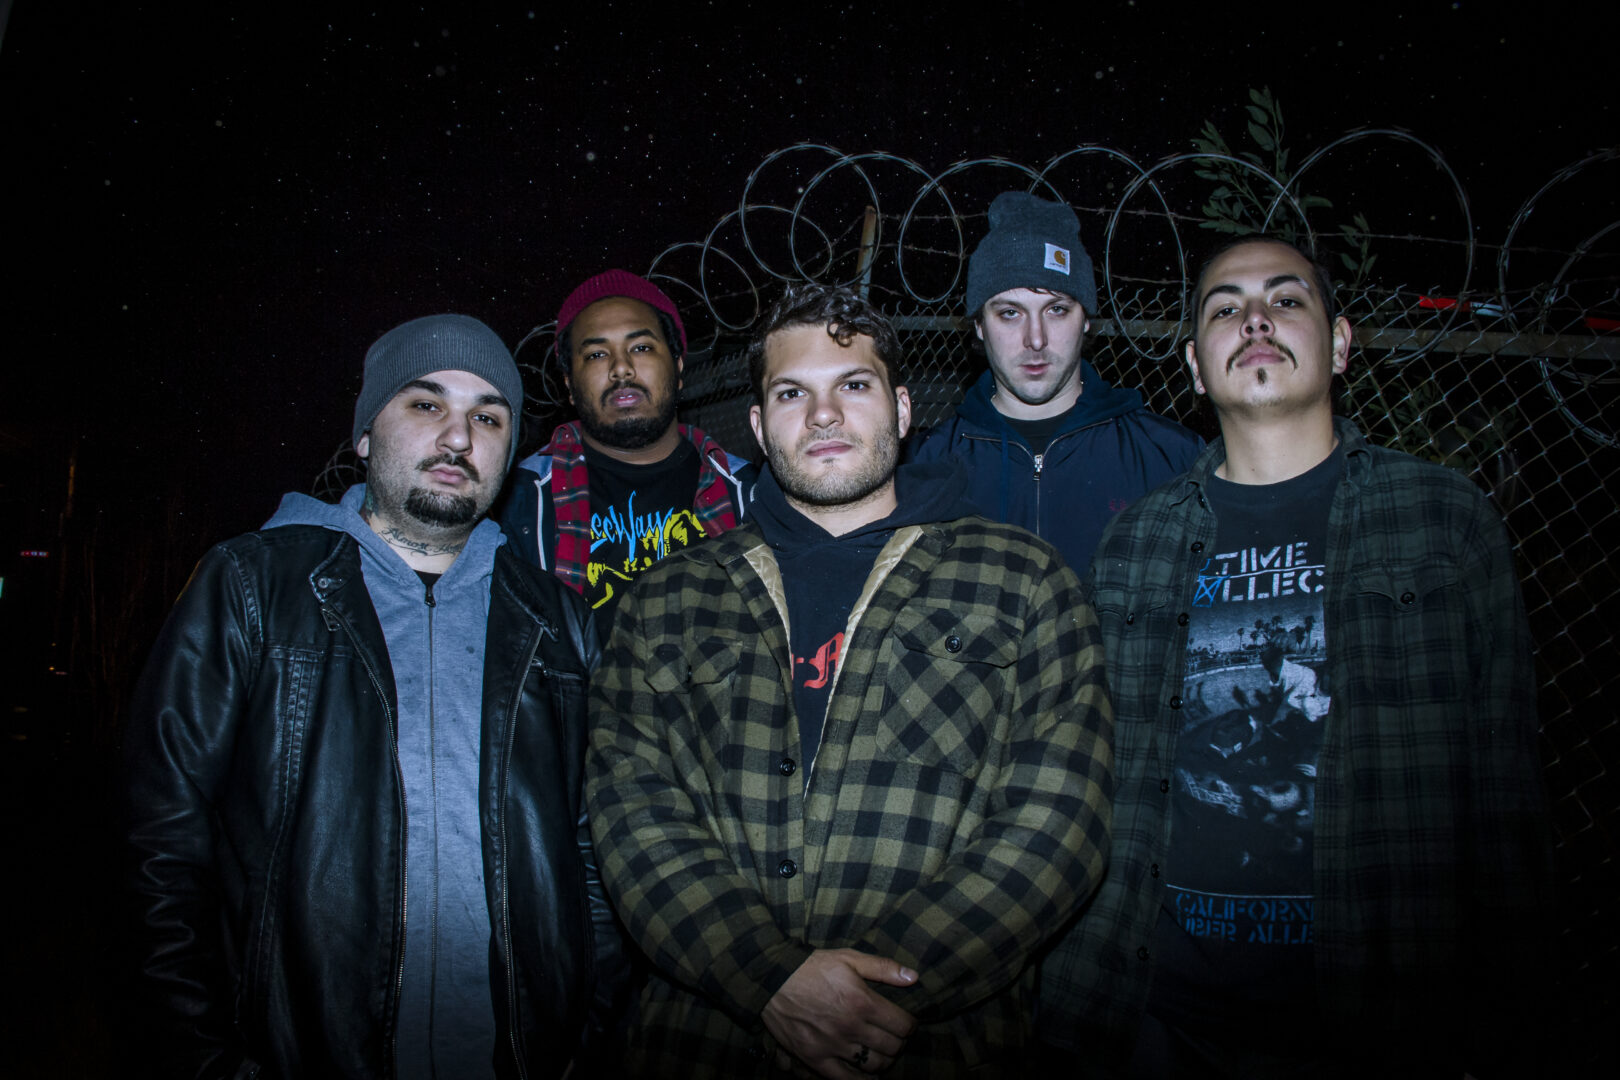 Mission Quest To Metal Fest Tour Announced feat. Alpha and Omega / Cruel Hand